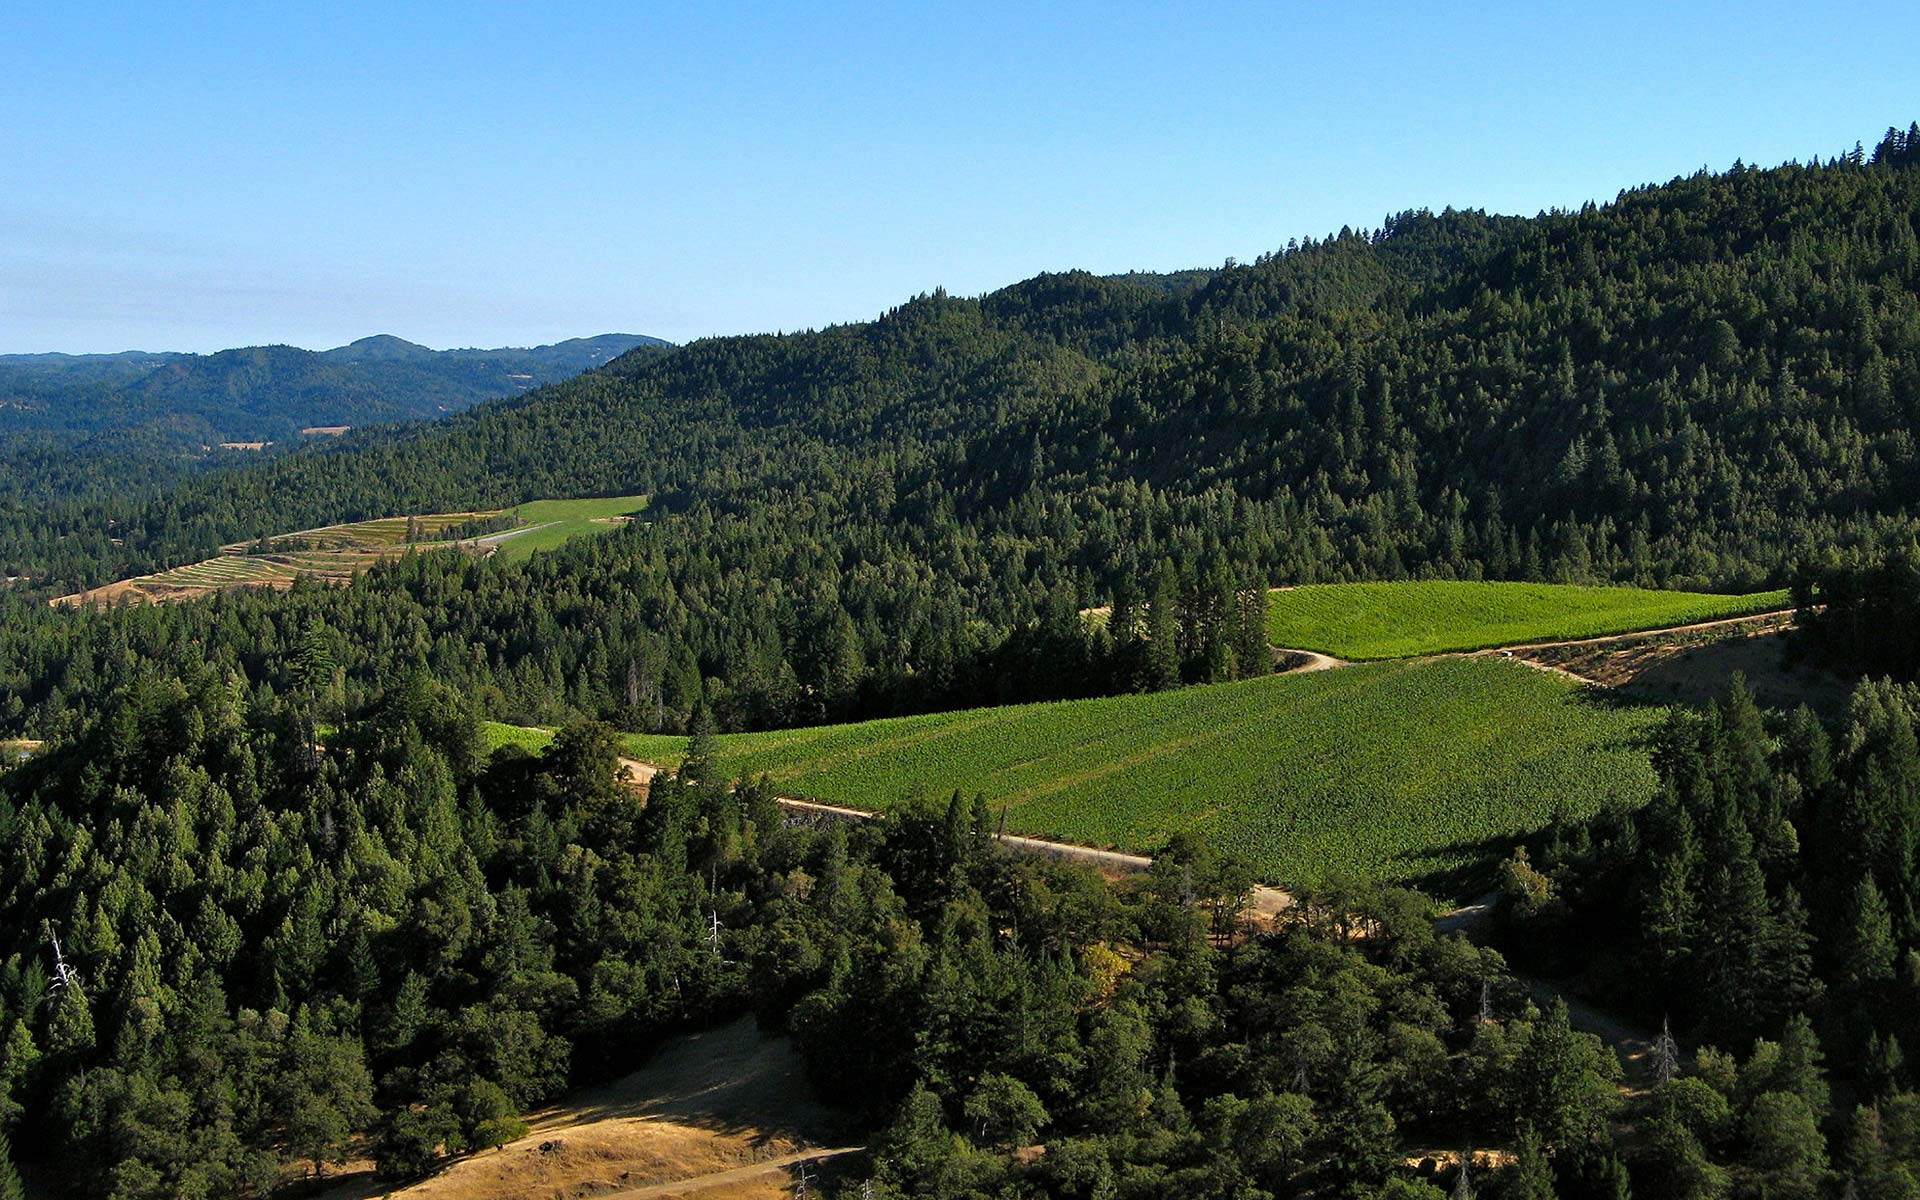 Pristine Setting: Overhead view of Alder Springs landscape